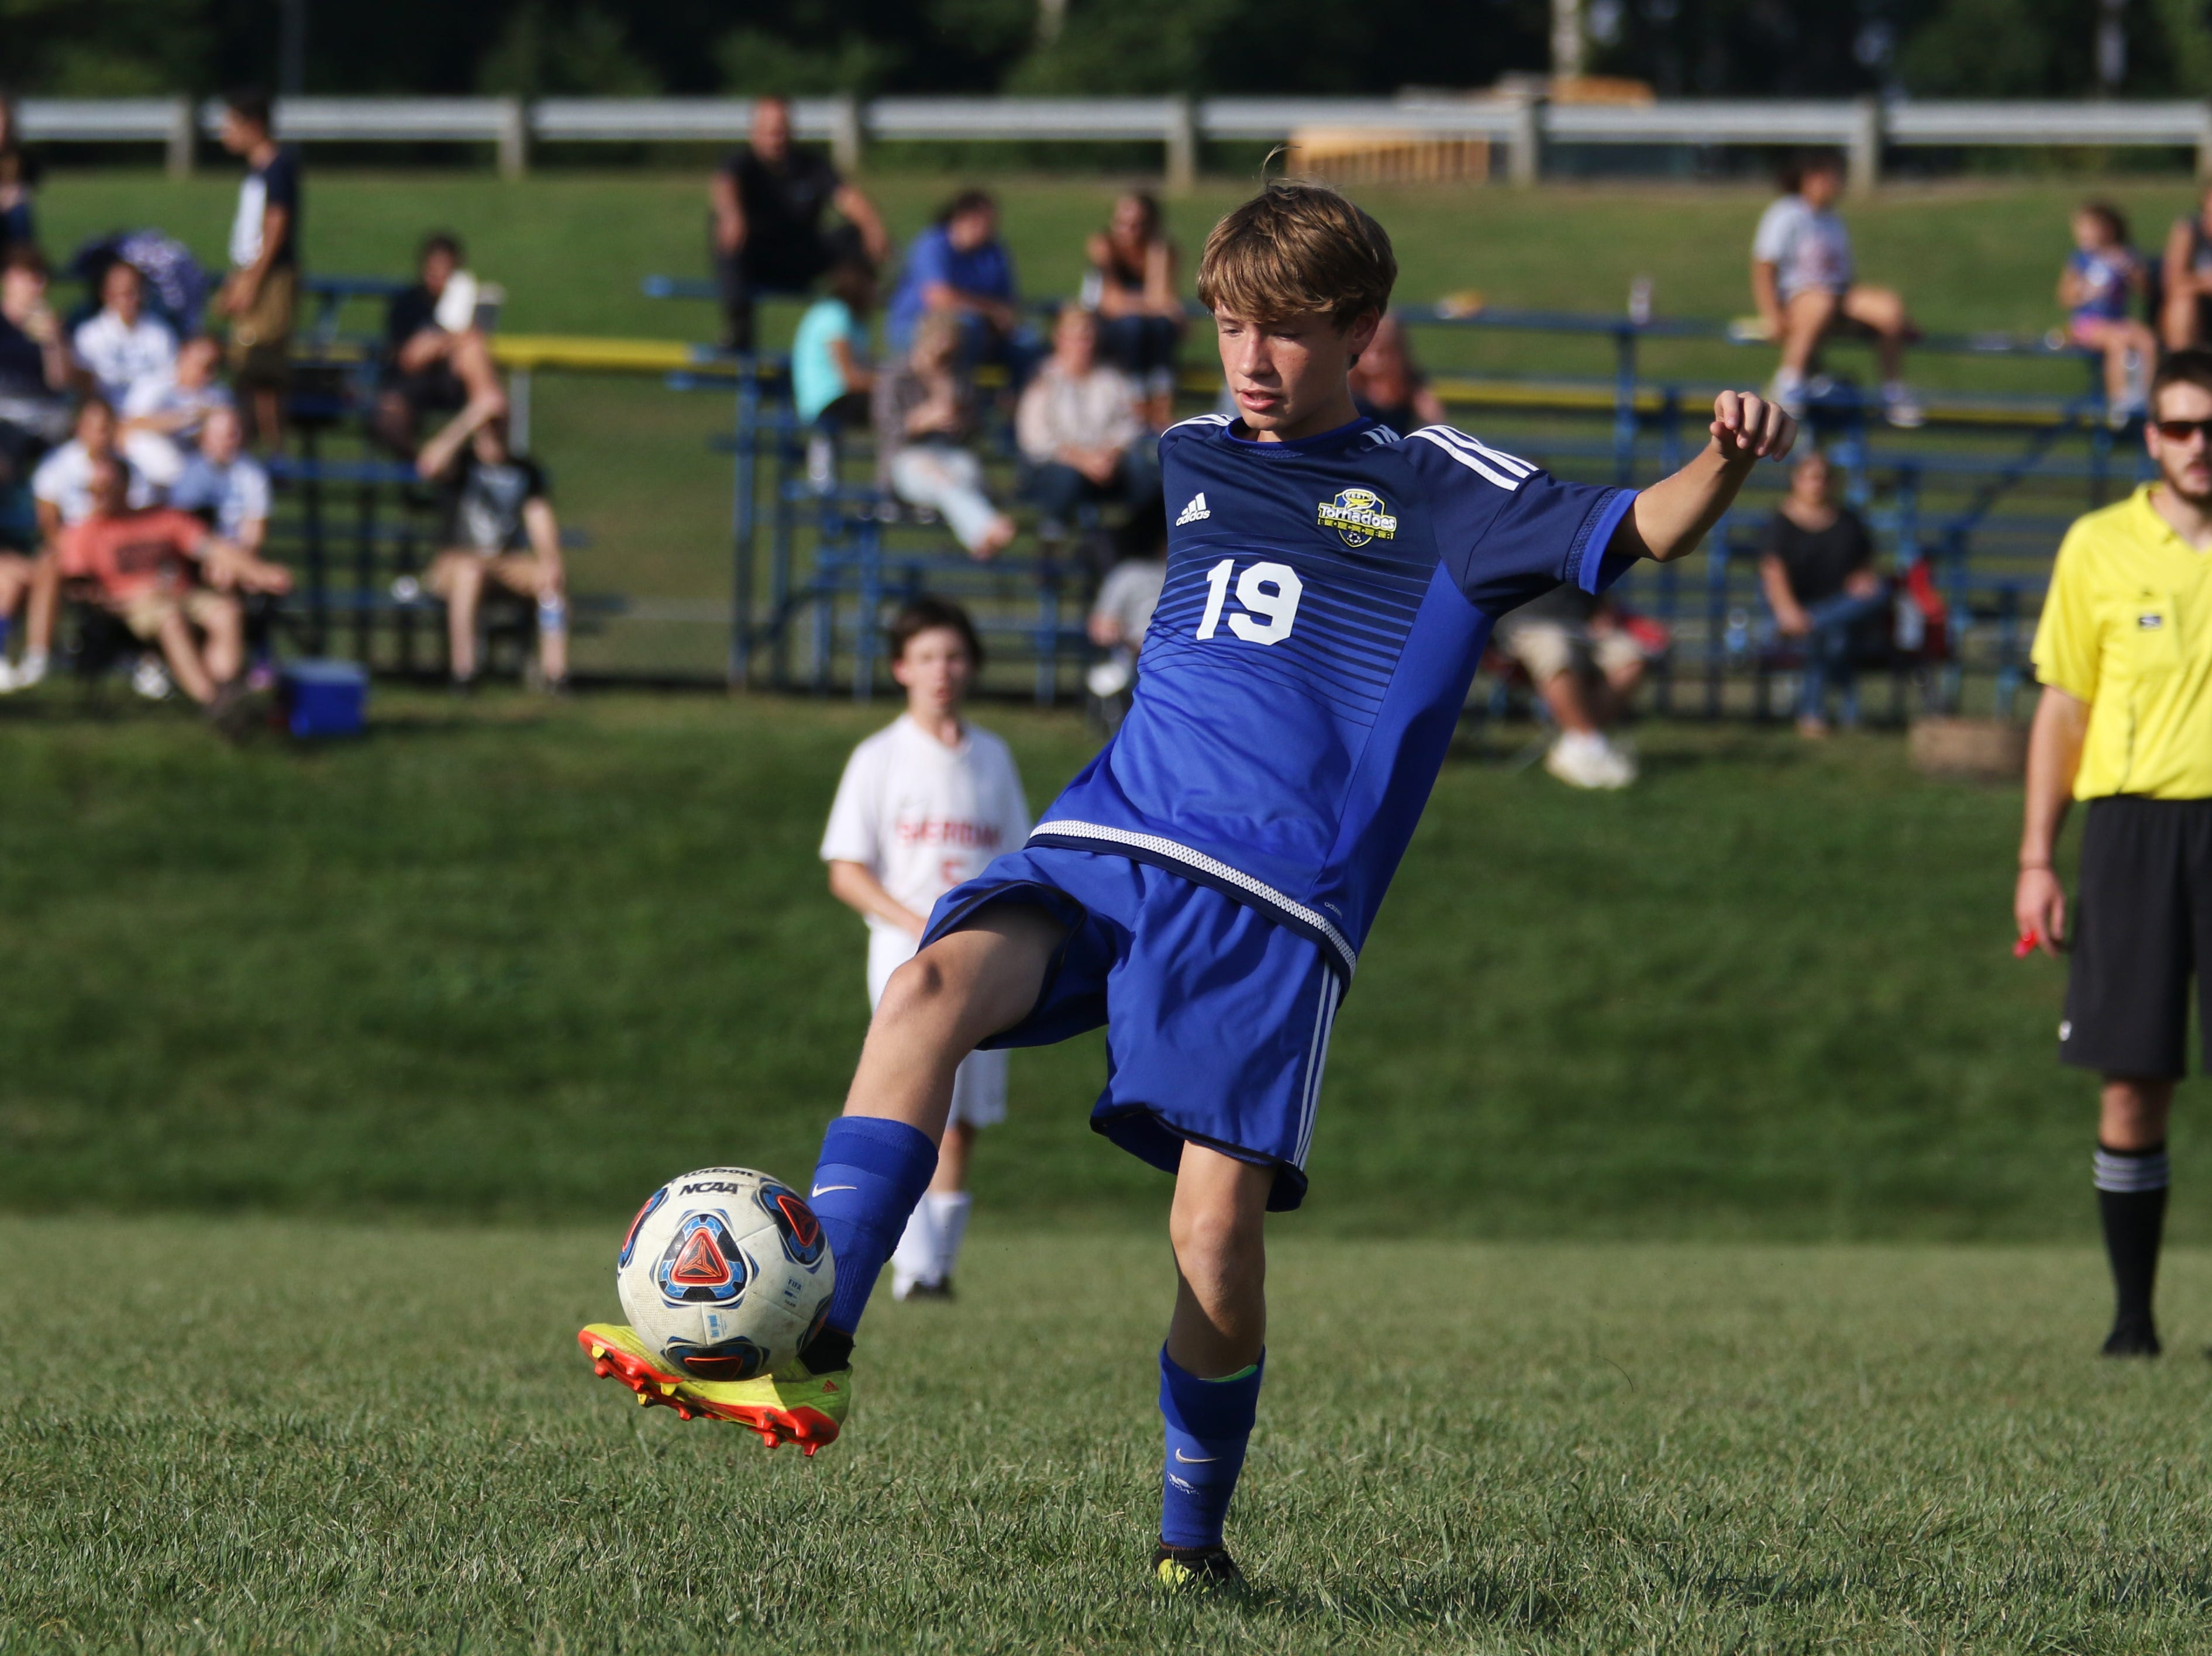 West Muskingum's Seath Collins controls the ball against Sheridan.